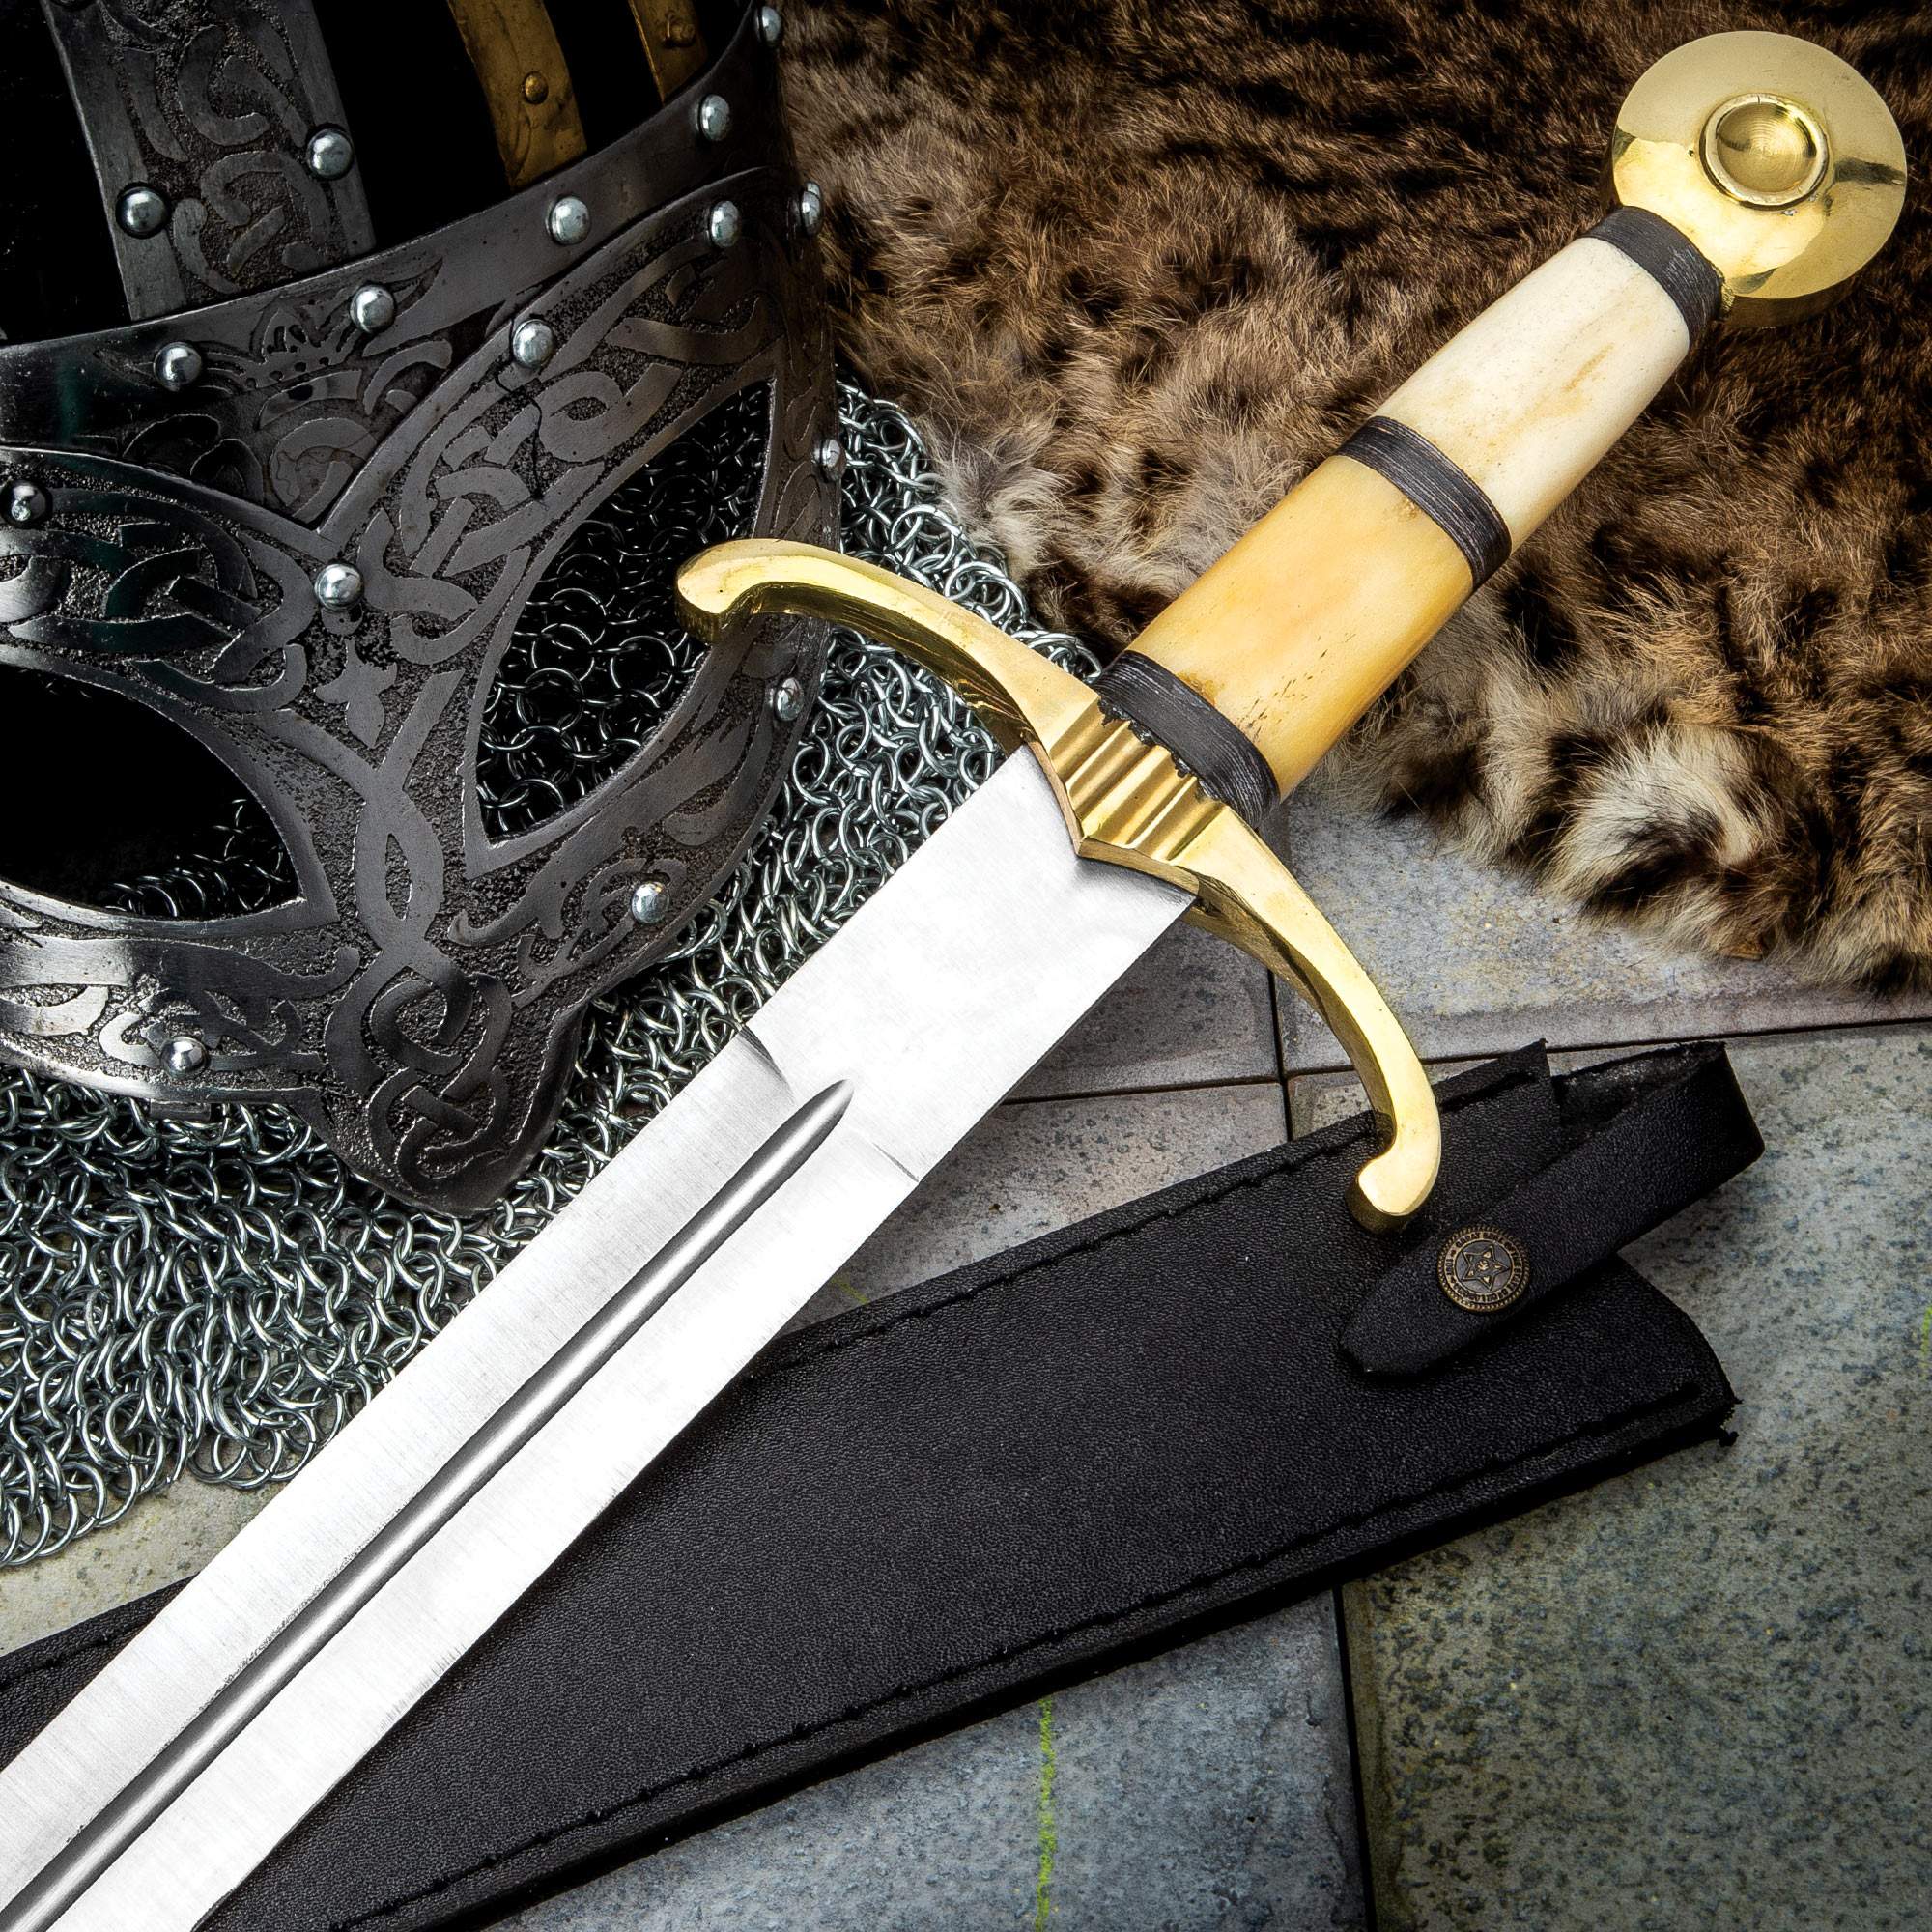 how to make a swor or.knifes handles